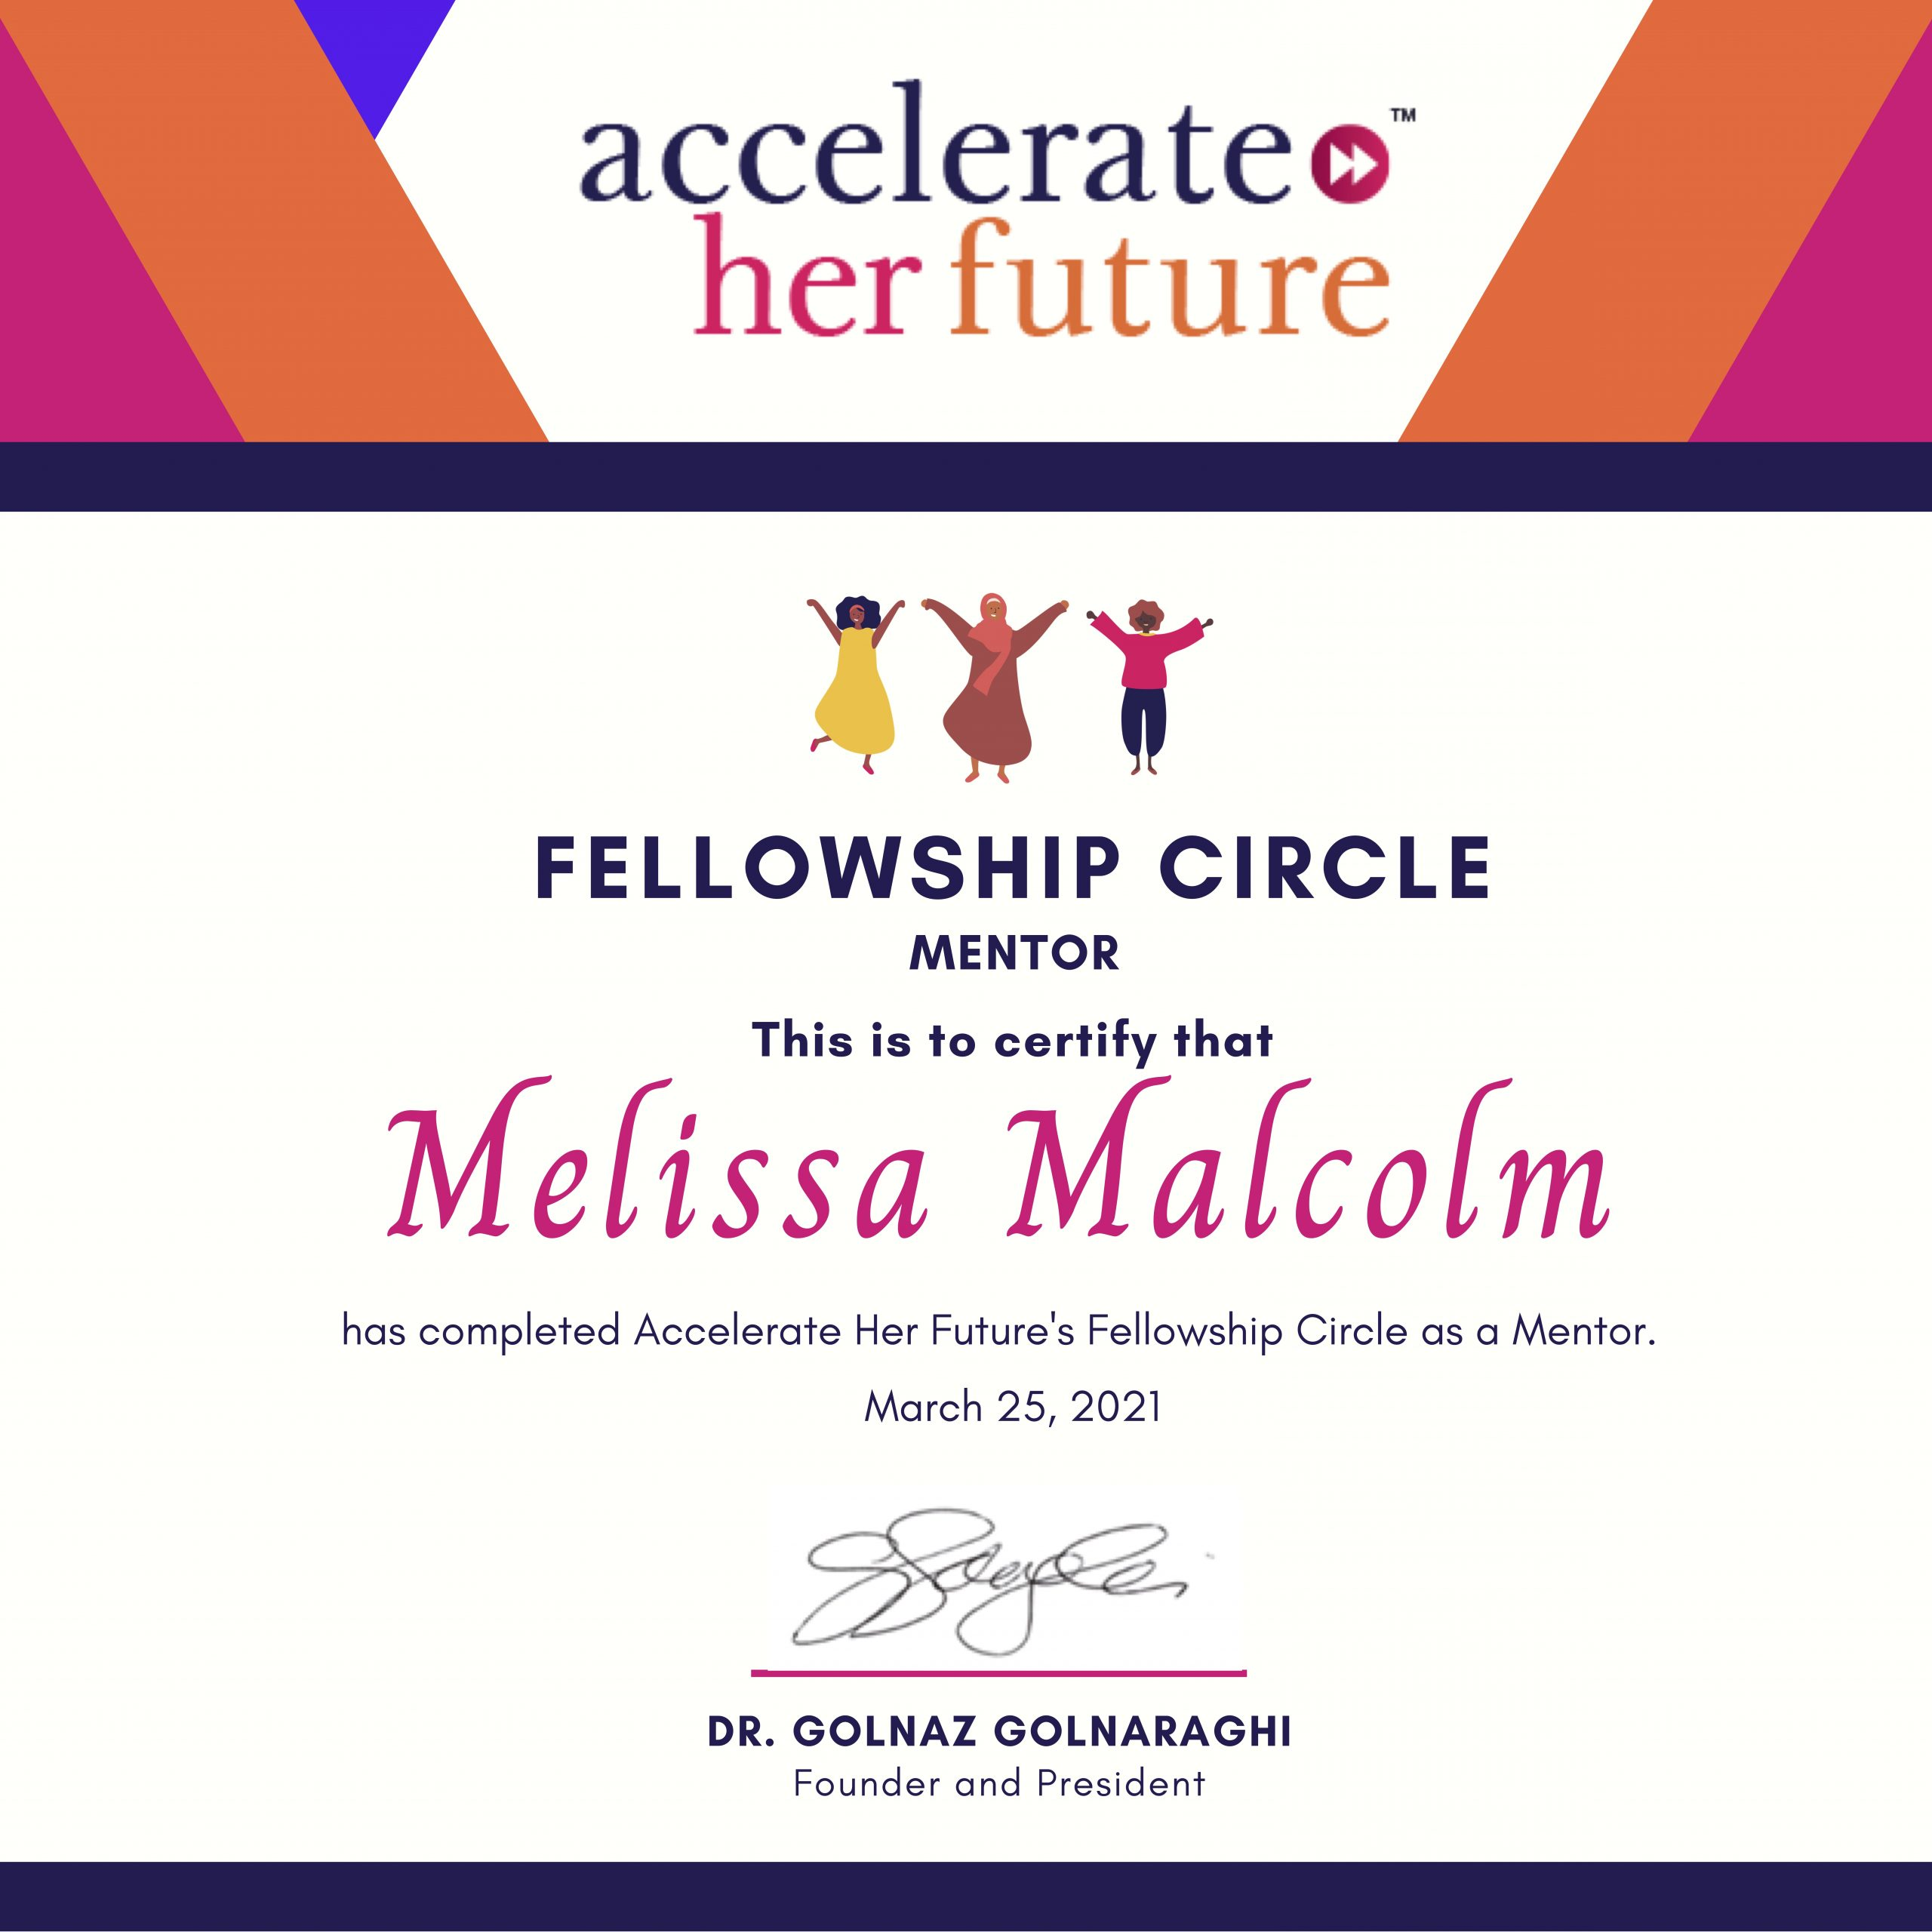 Accelerate her future certificate of fellowship circle mentoring in 2021